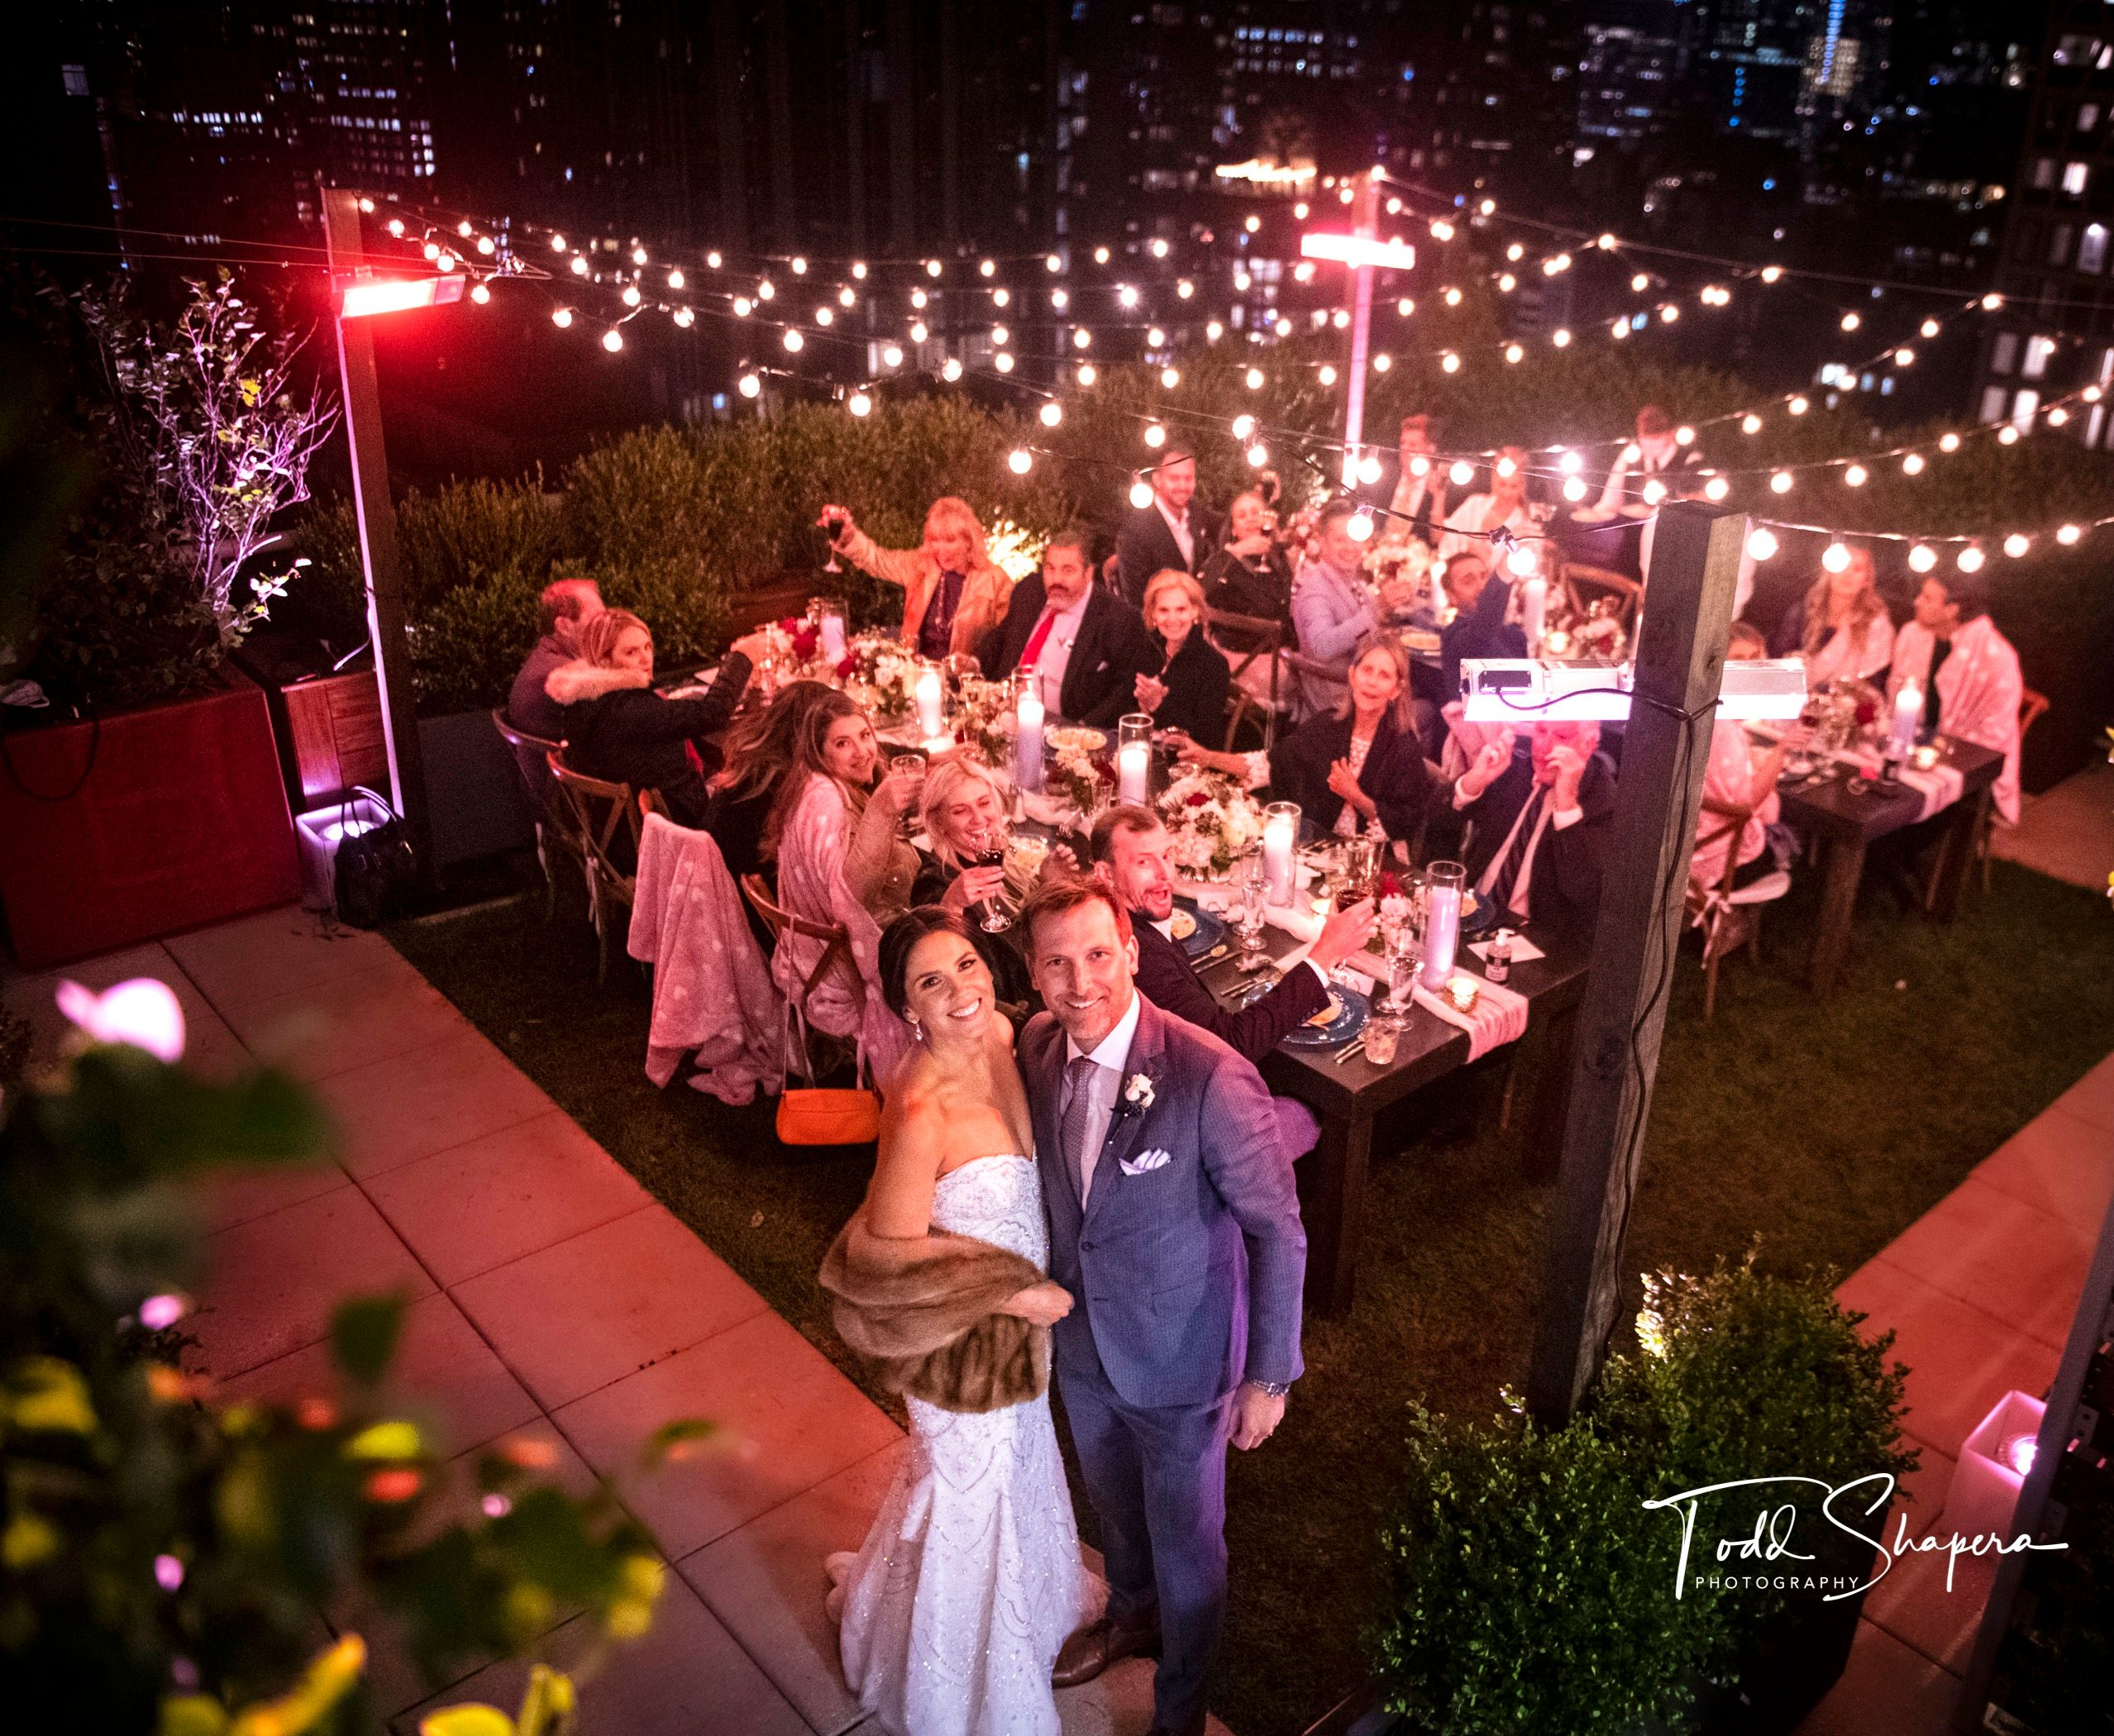 A New York Rooftop Reception